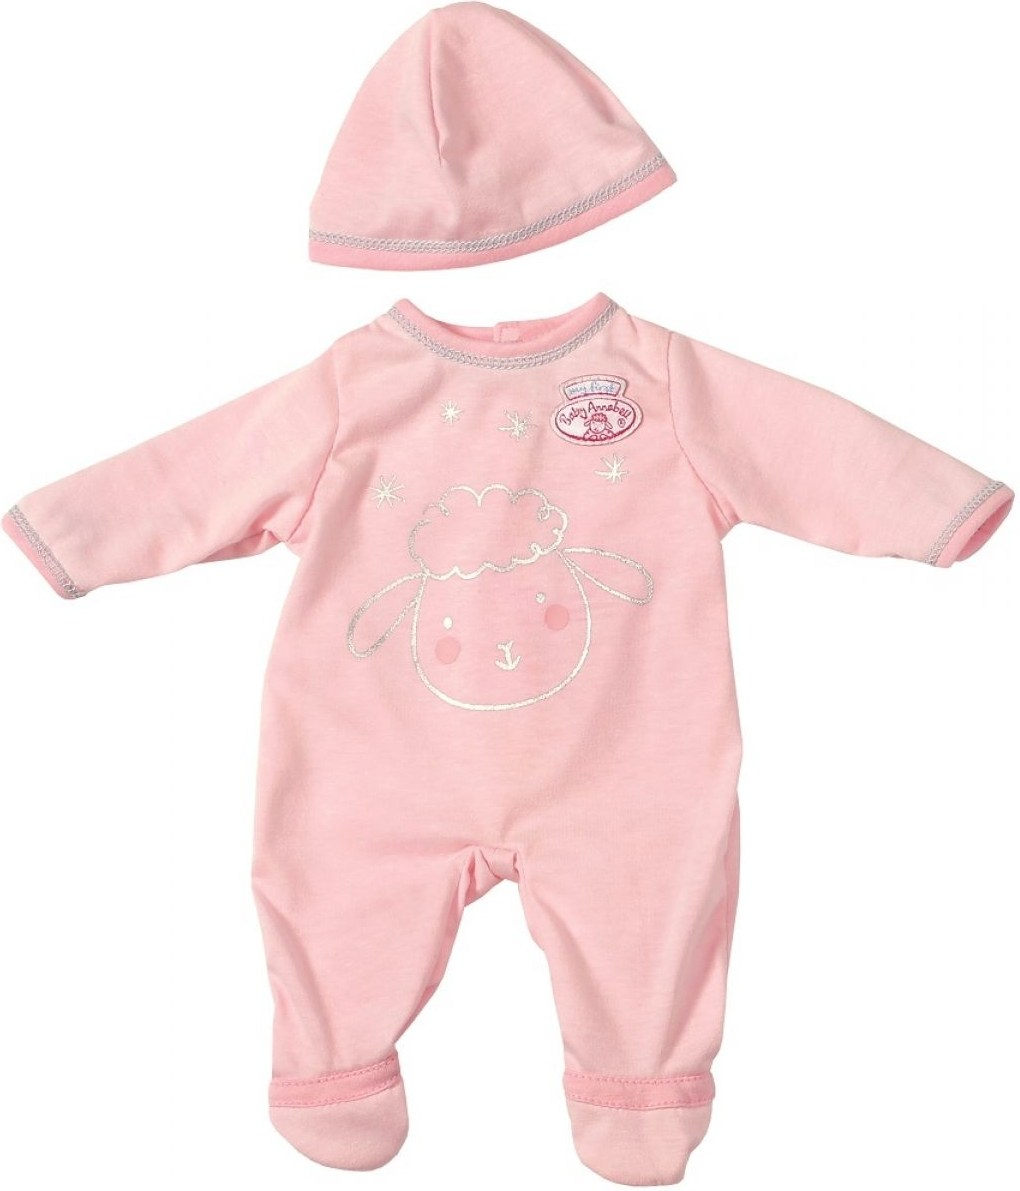 43aeeab631772 Zapf Creation Baby Annabell - My First | Pricemania